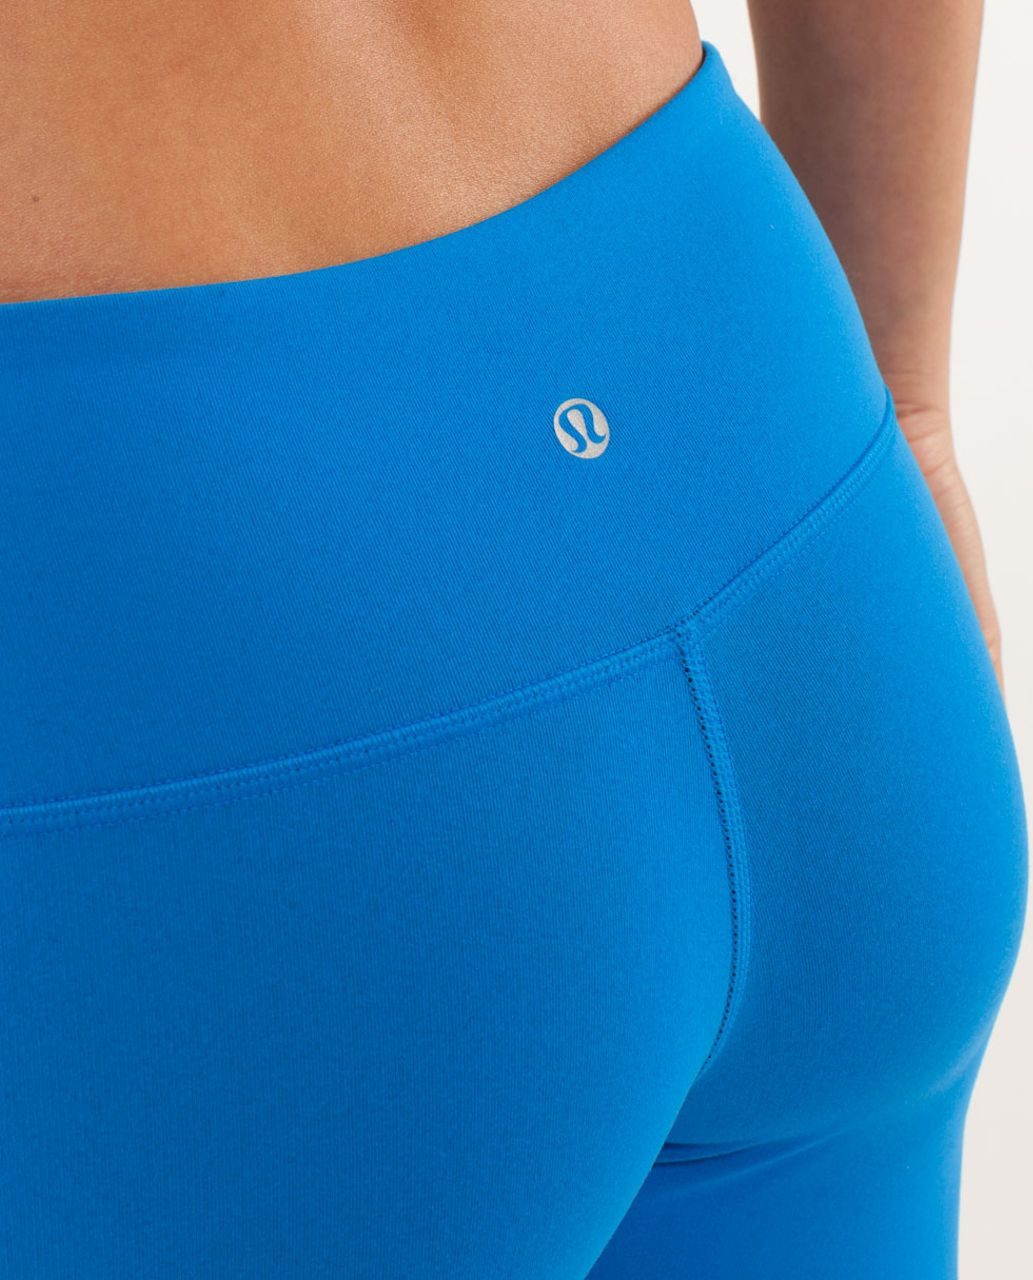 Lululemon Wunder Under Pant *Reversible - Beaming Blue / Black